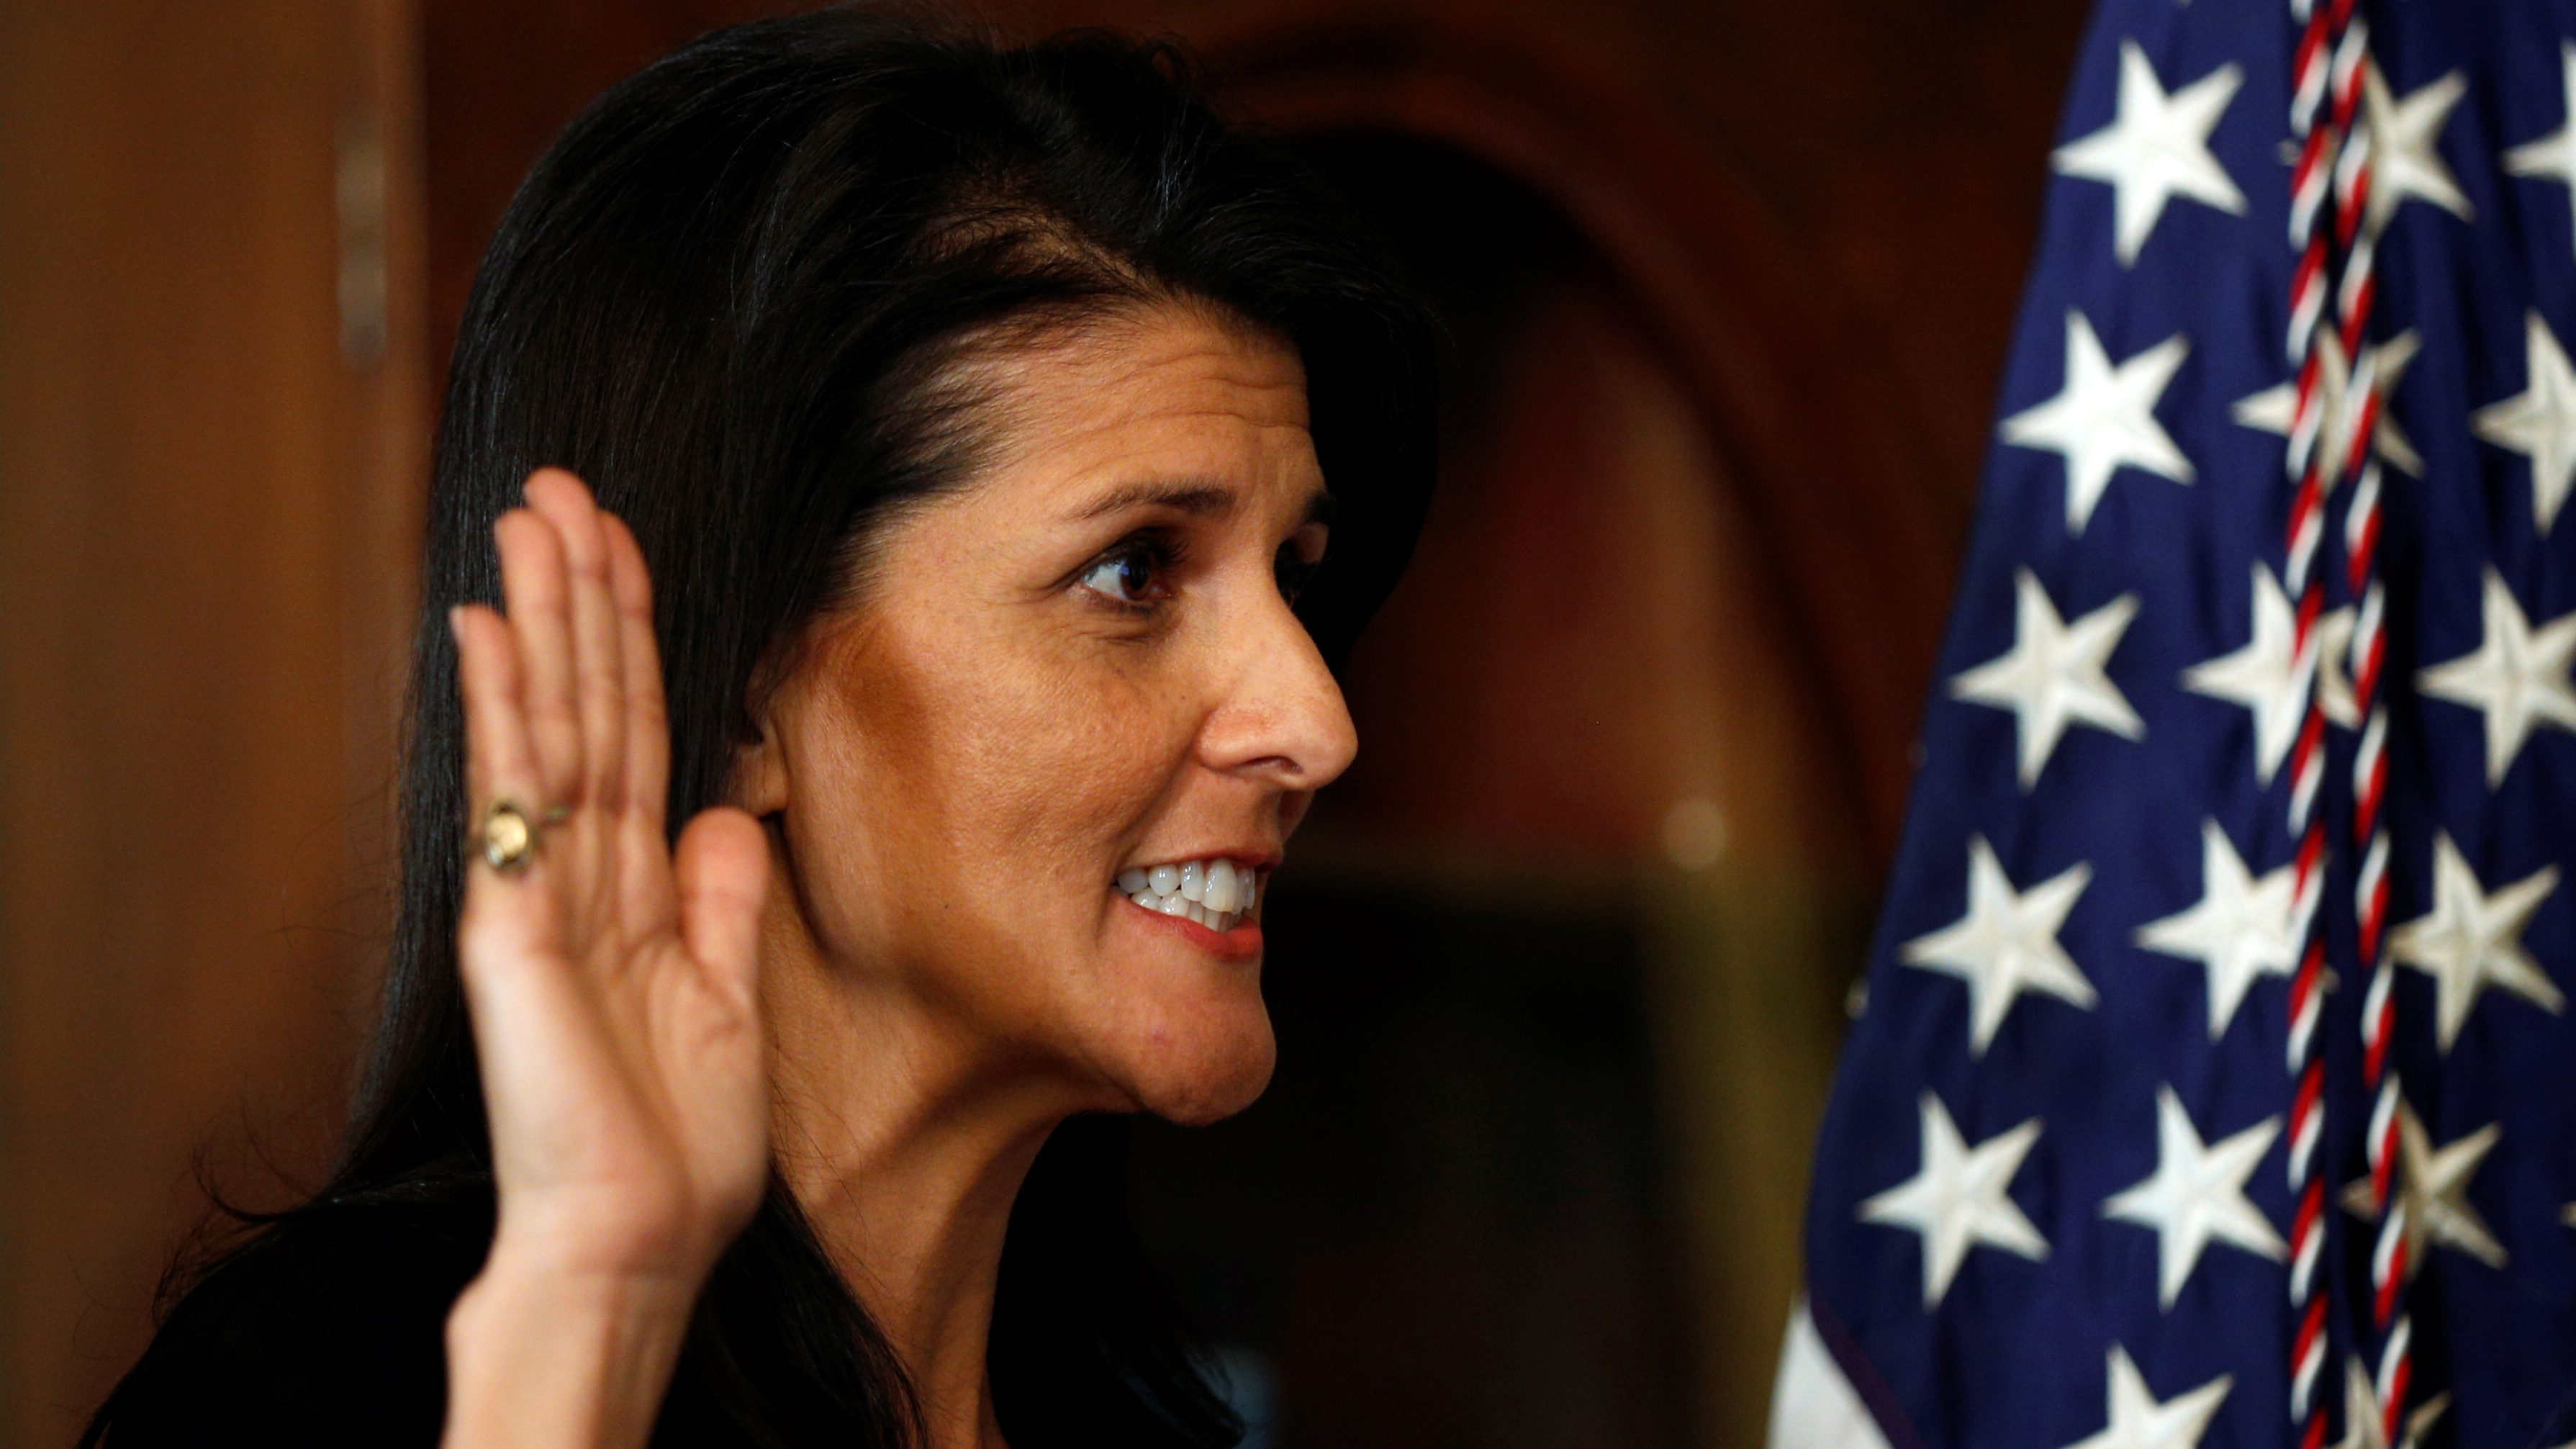 Nikki Haley is sworn in as U.S. Ambassador the the United Nations by U.S. Vice President Mike Pence in the Eisenhower Executive Office Building in Washington, U.S., January 25, 2017.  REUTERS/Kevin Lamarque - RTSXBJ7